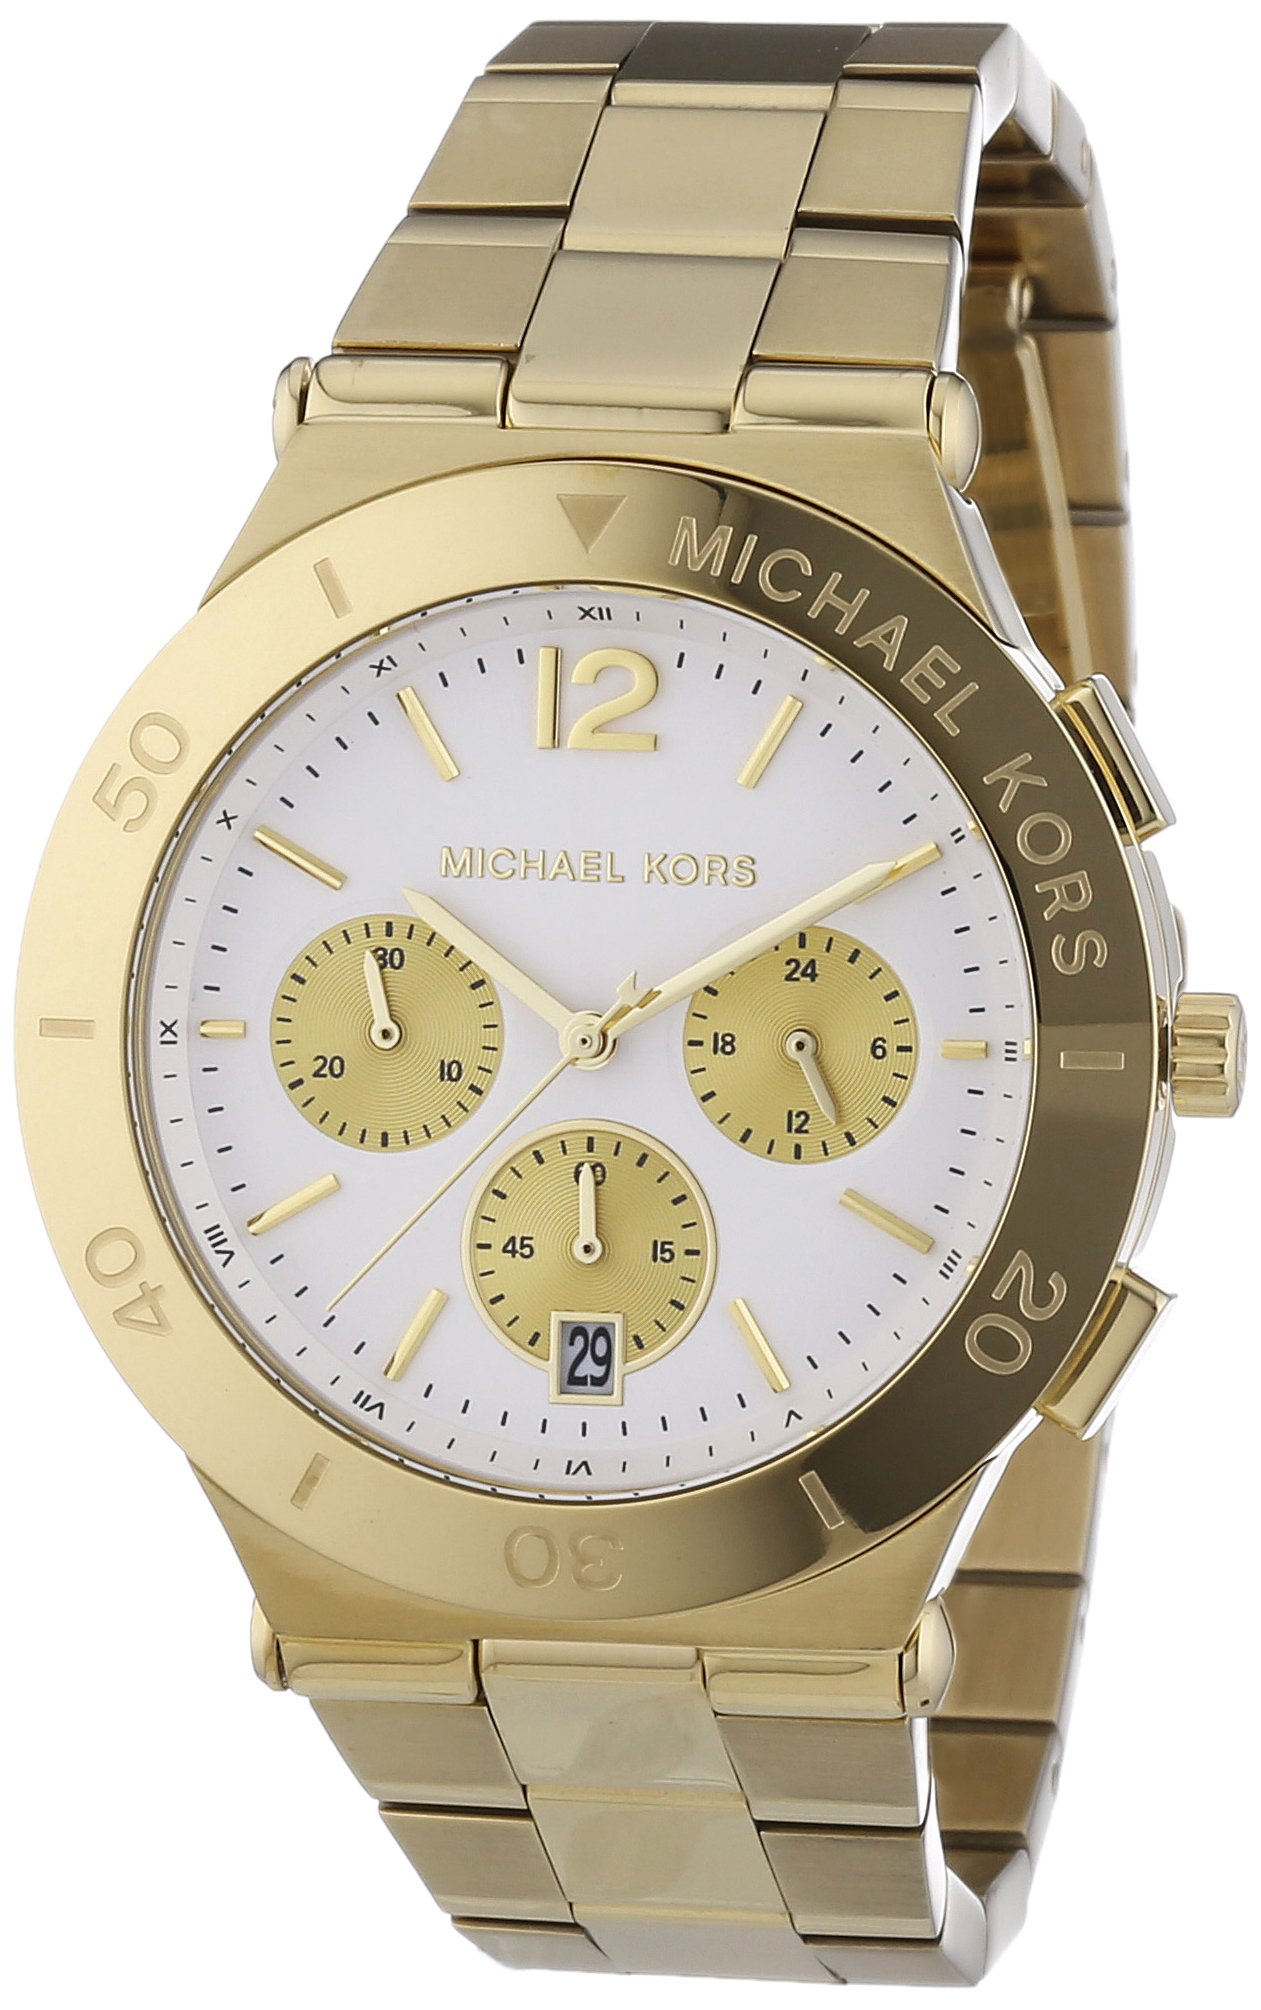 Michael Kors Wyatt Chronograph White Dial Gold Ion-plated Ladies Watch MK5933 by Michael Kors